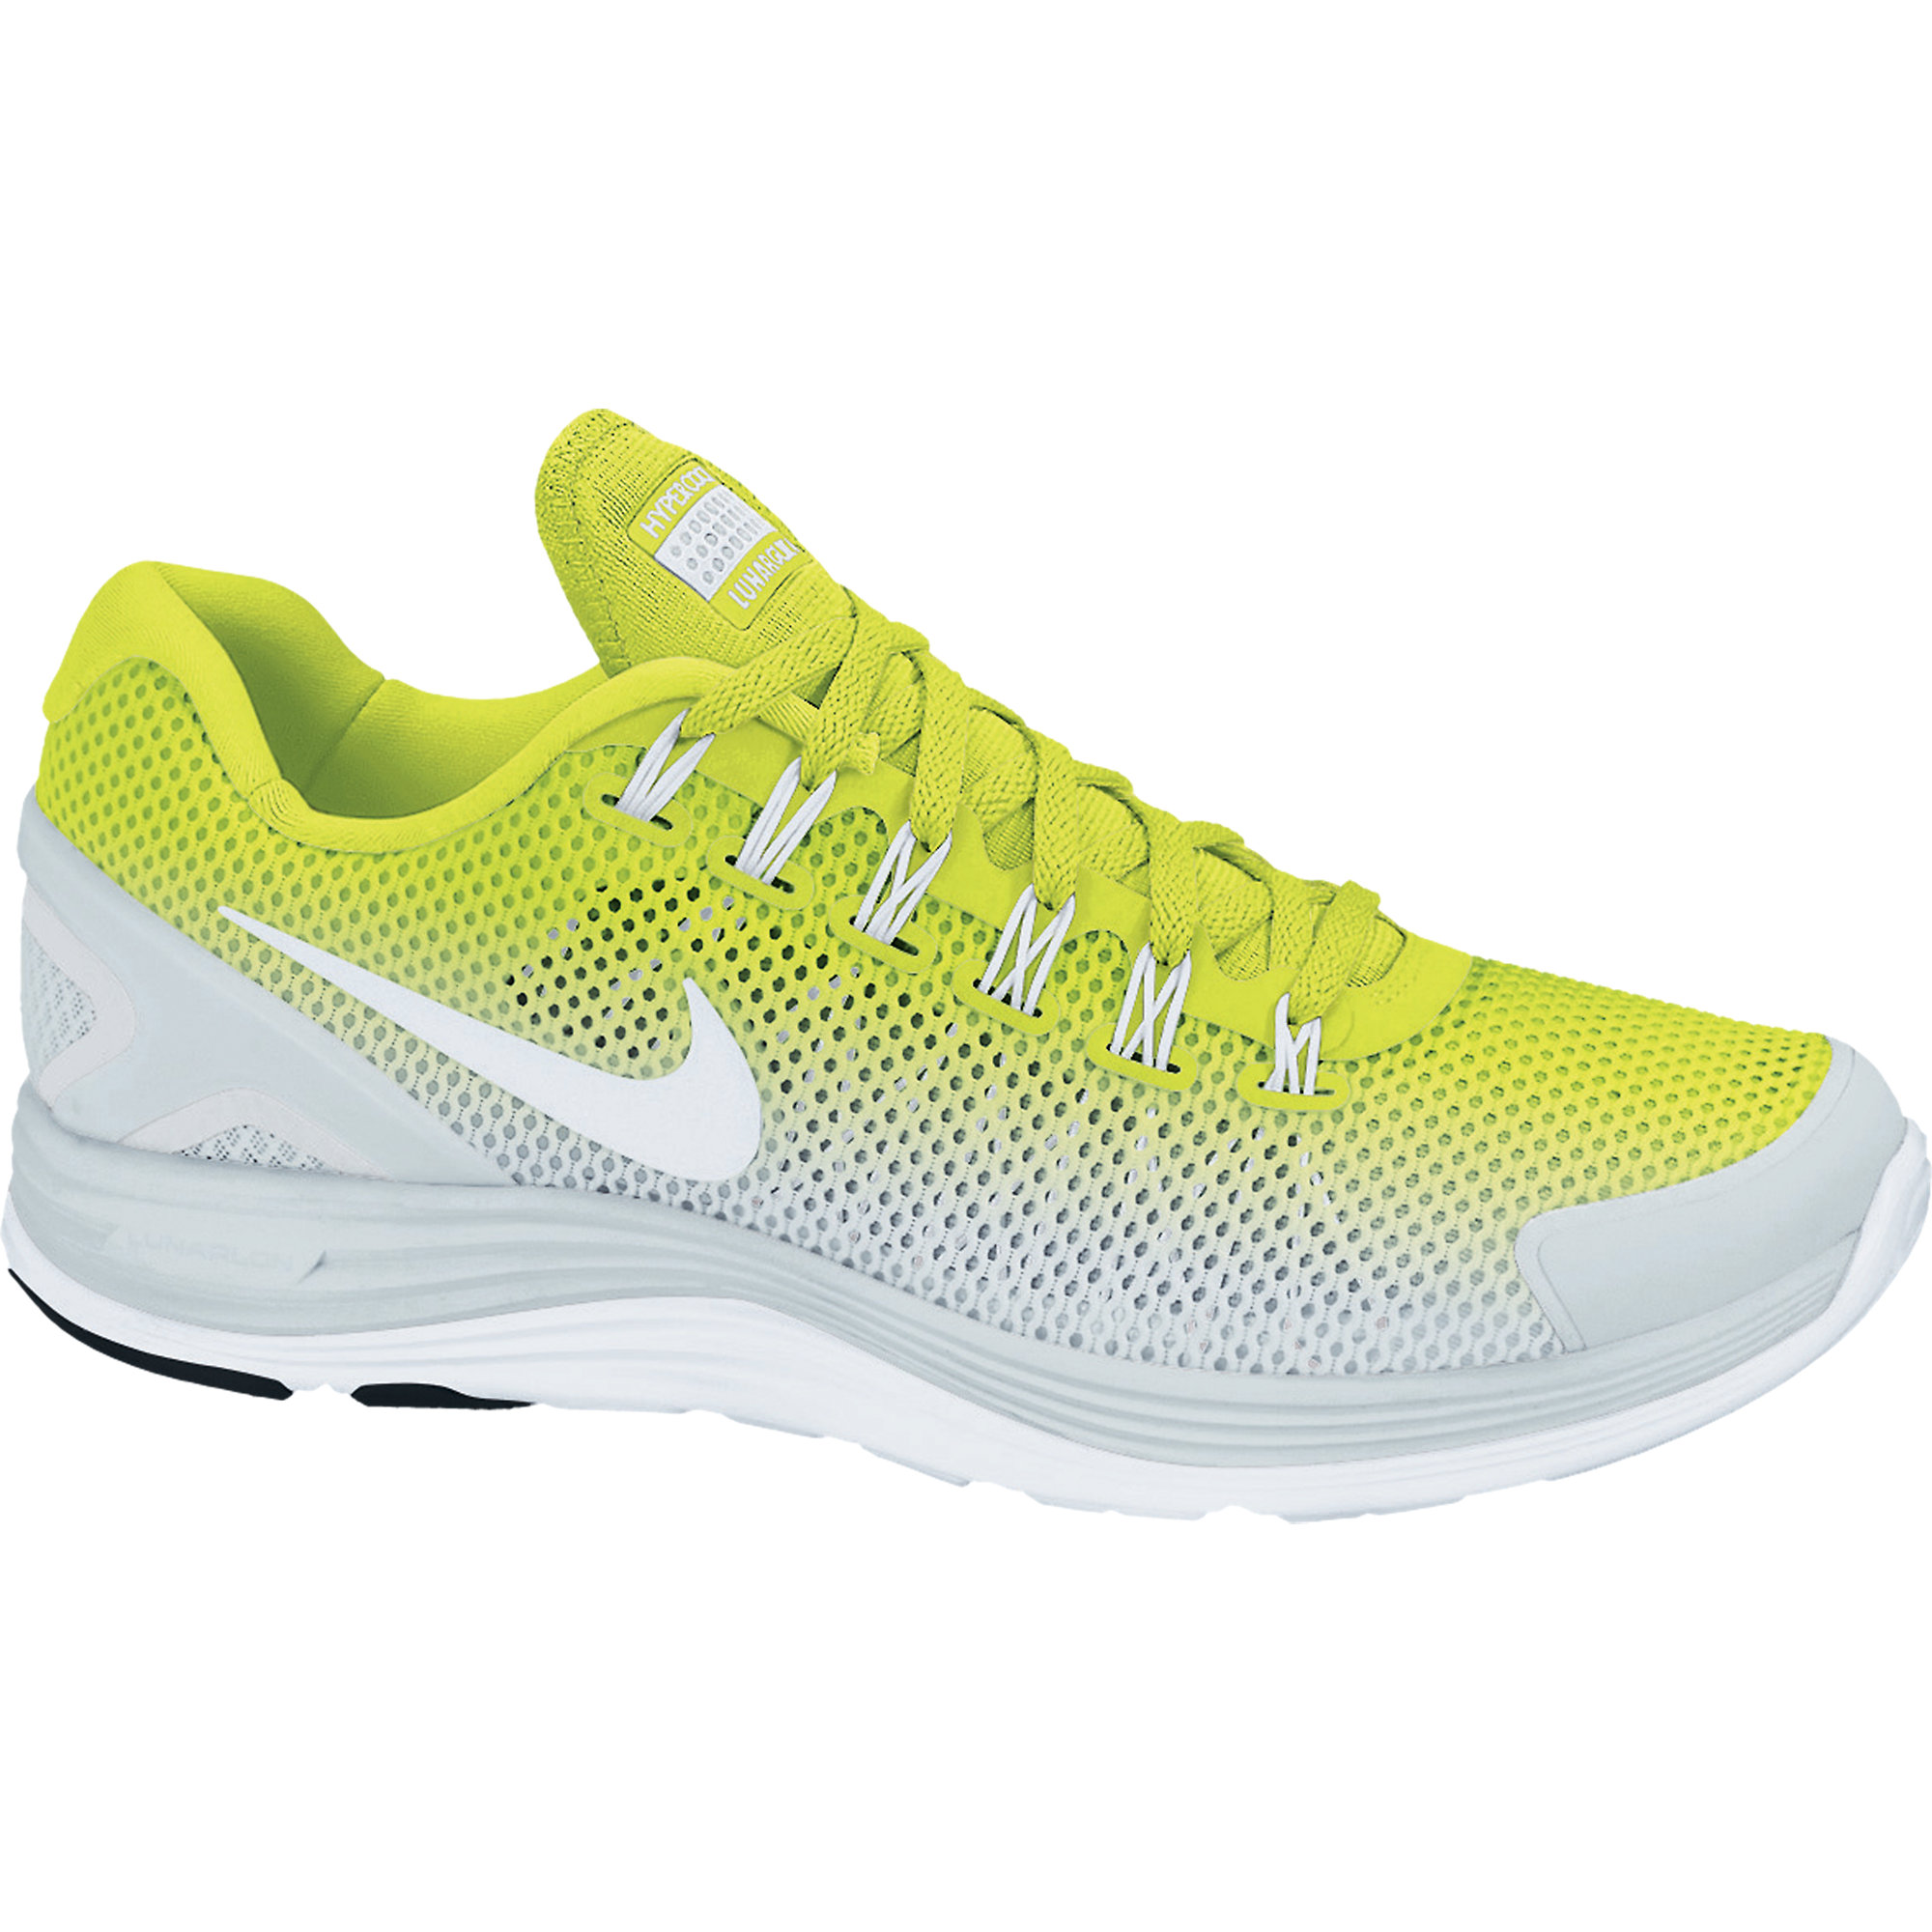 buy popular c4c18 8deef Nike Lunarglide 4 Breathe Shoes